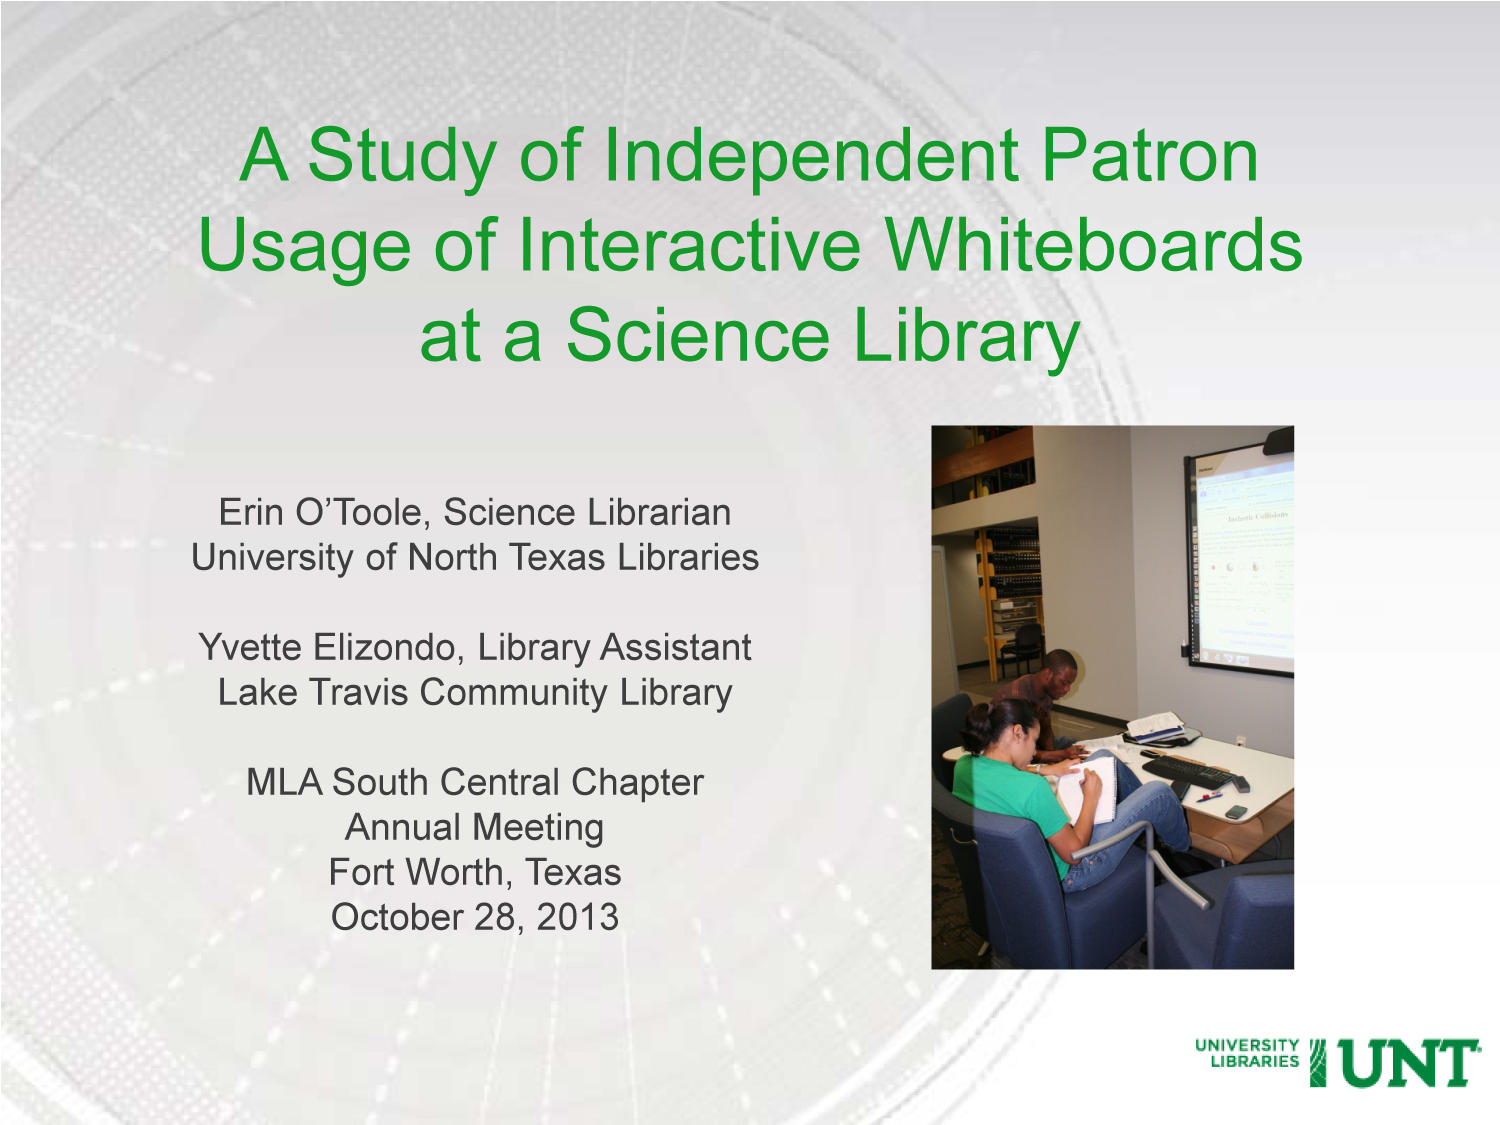 A Study of Independent Patron Usage of Interactive Whiteboards at a Science Library                                                                                                      [Sequence #]: 2 of 15